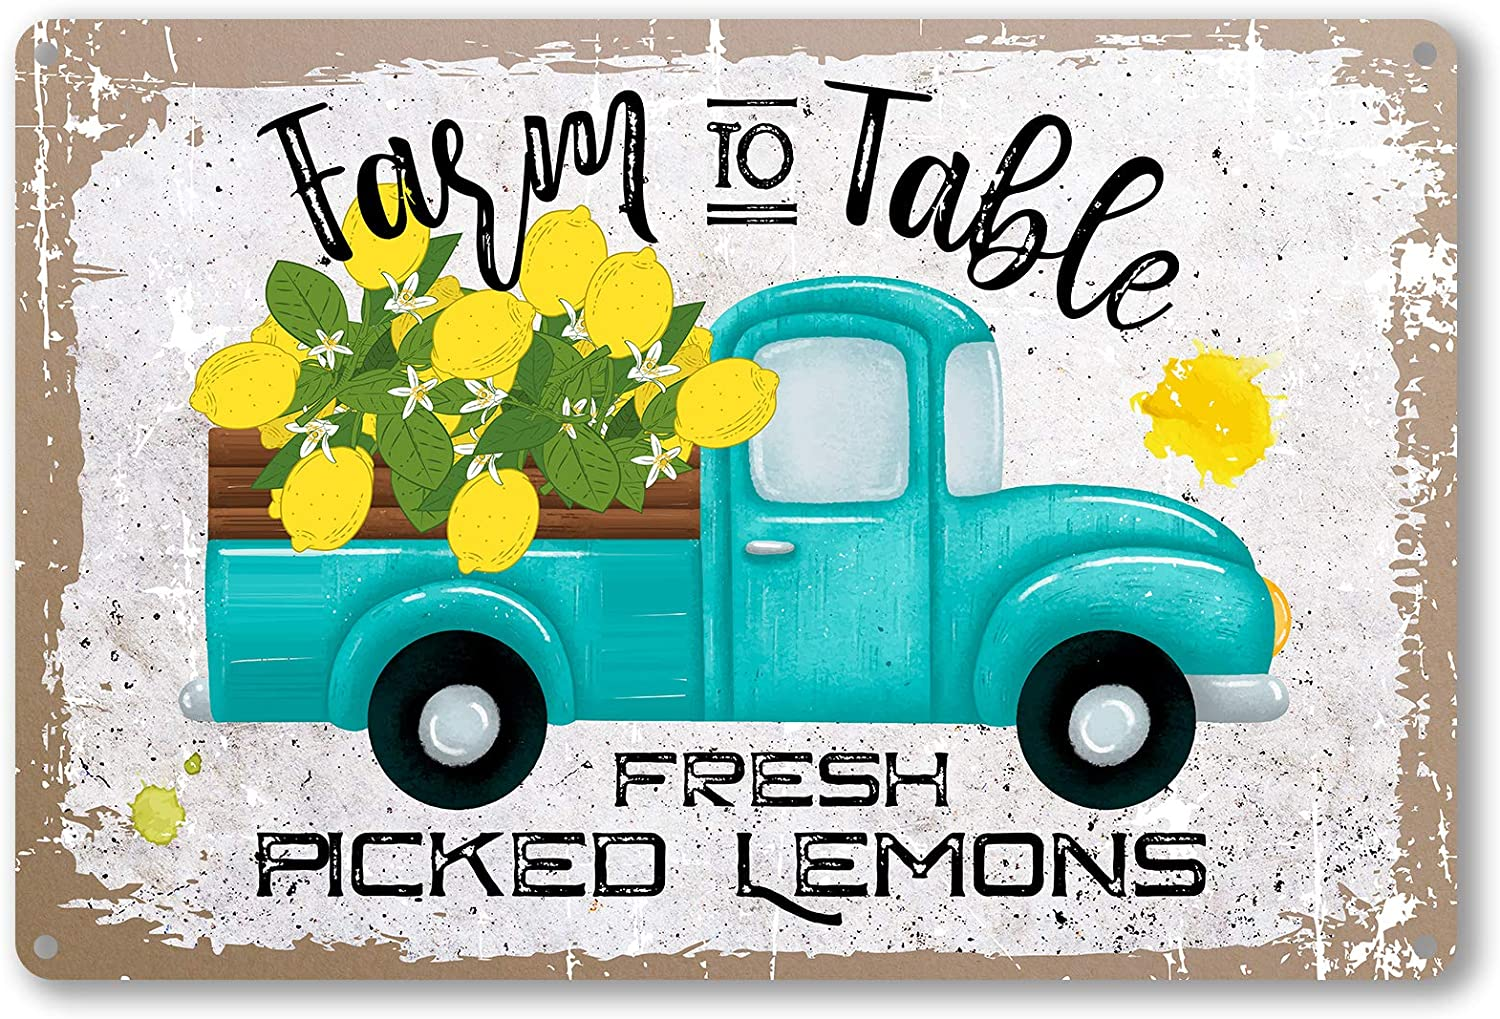 ForbiddenPaper Funny Quote Lemon Metal Tin Sign Wall Decor - Vintage Farm to Table Fresh Picked Lemons Metal Tin Sign for Home Bar Coffee Wall Decor Gifts - Best Retro Signs Decor Gift 8x12 Inch